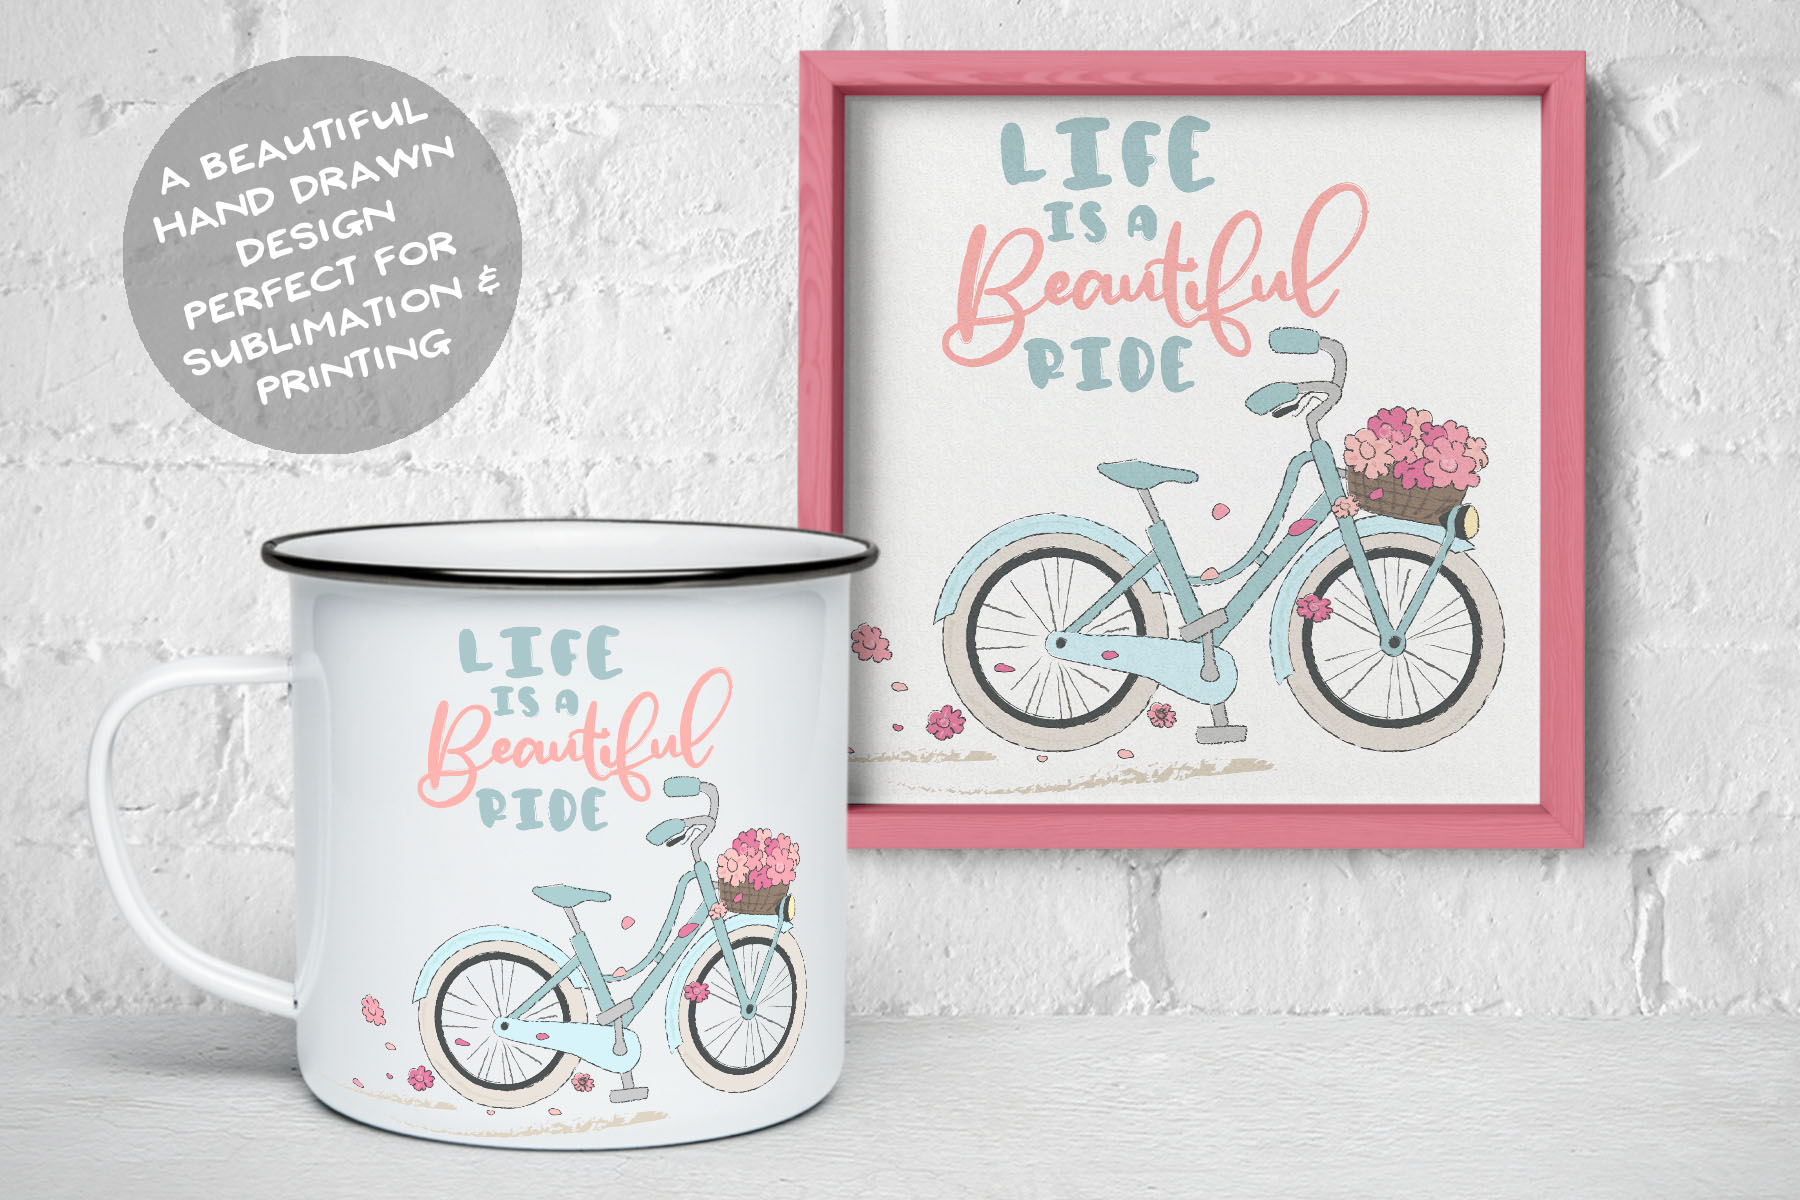 Life is a Beautiful Ride | Sublimation Life Quote with Bike example image 2